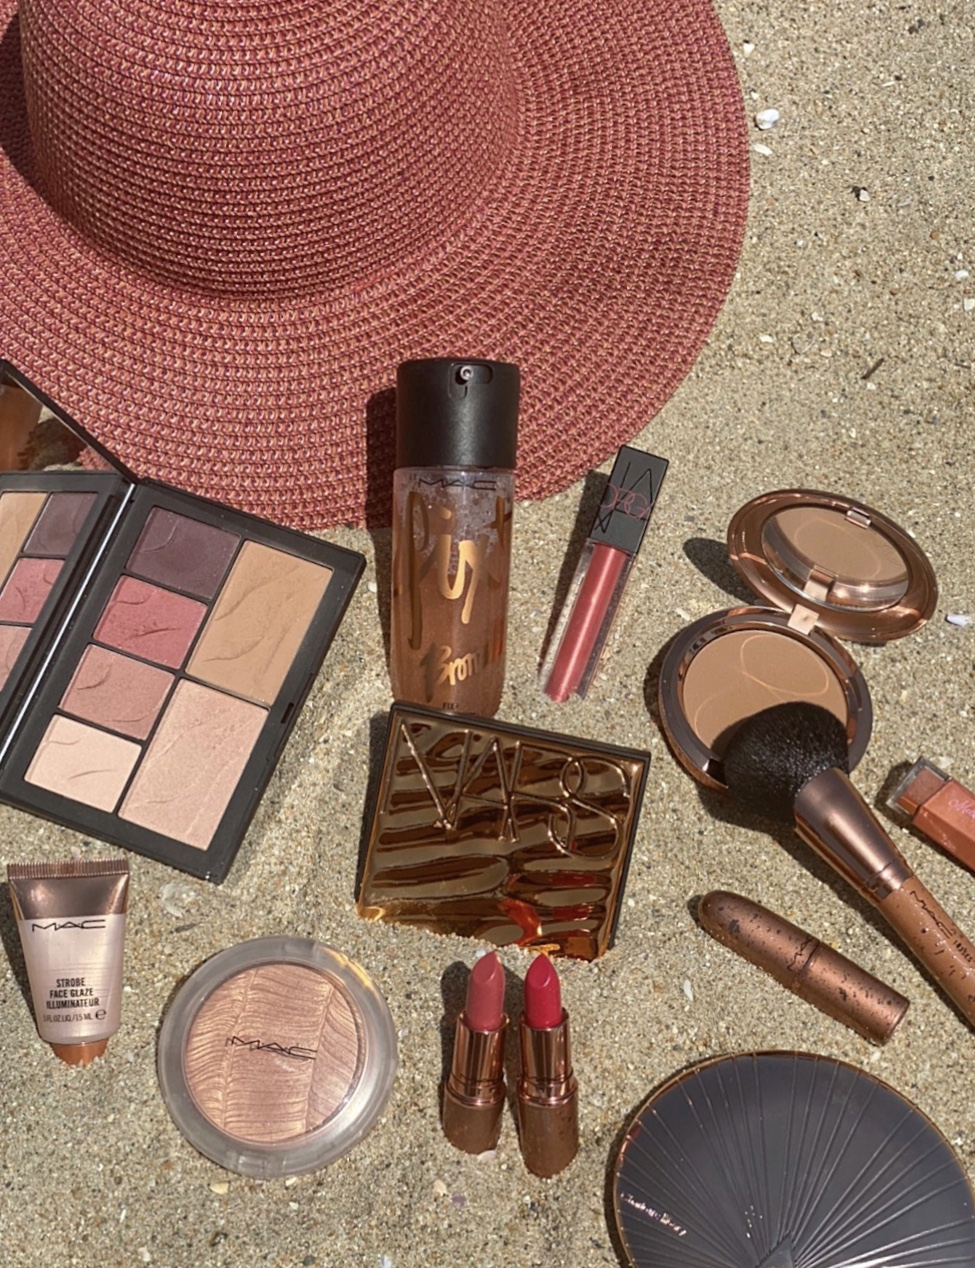 Summer Makeup featuring the MAC Bronzed Collection,  NARS, and Charlotte Tilbury's Airflash Bronzer